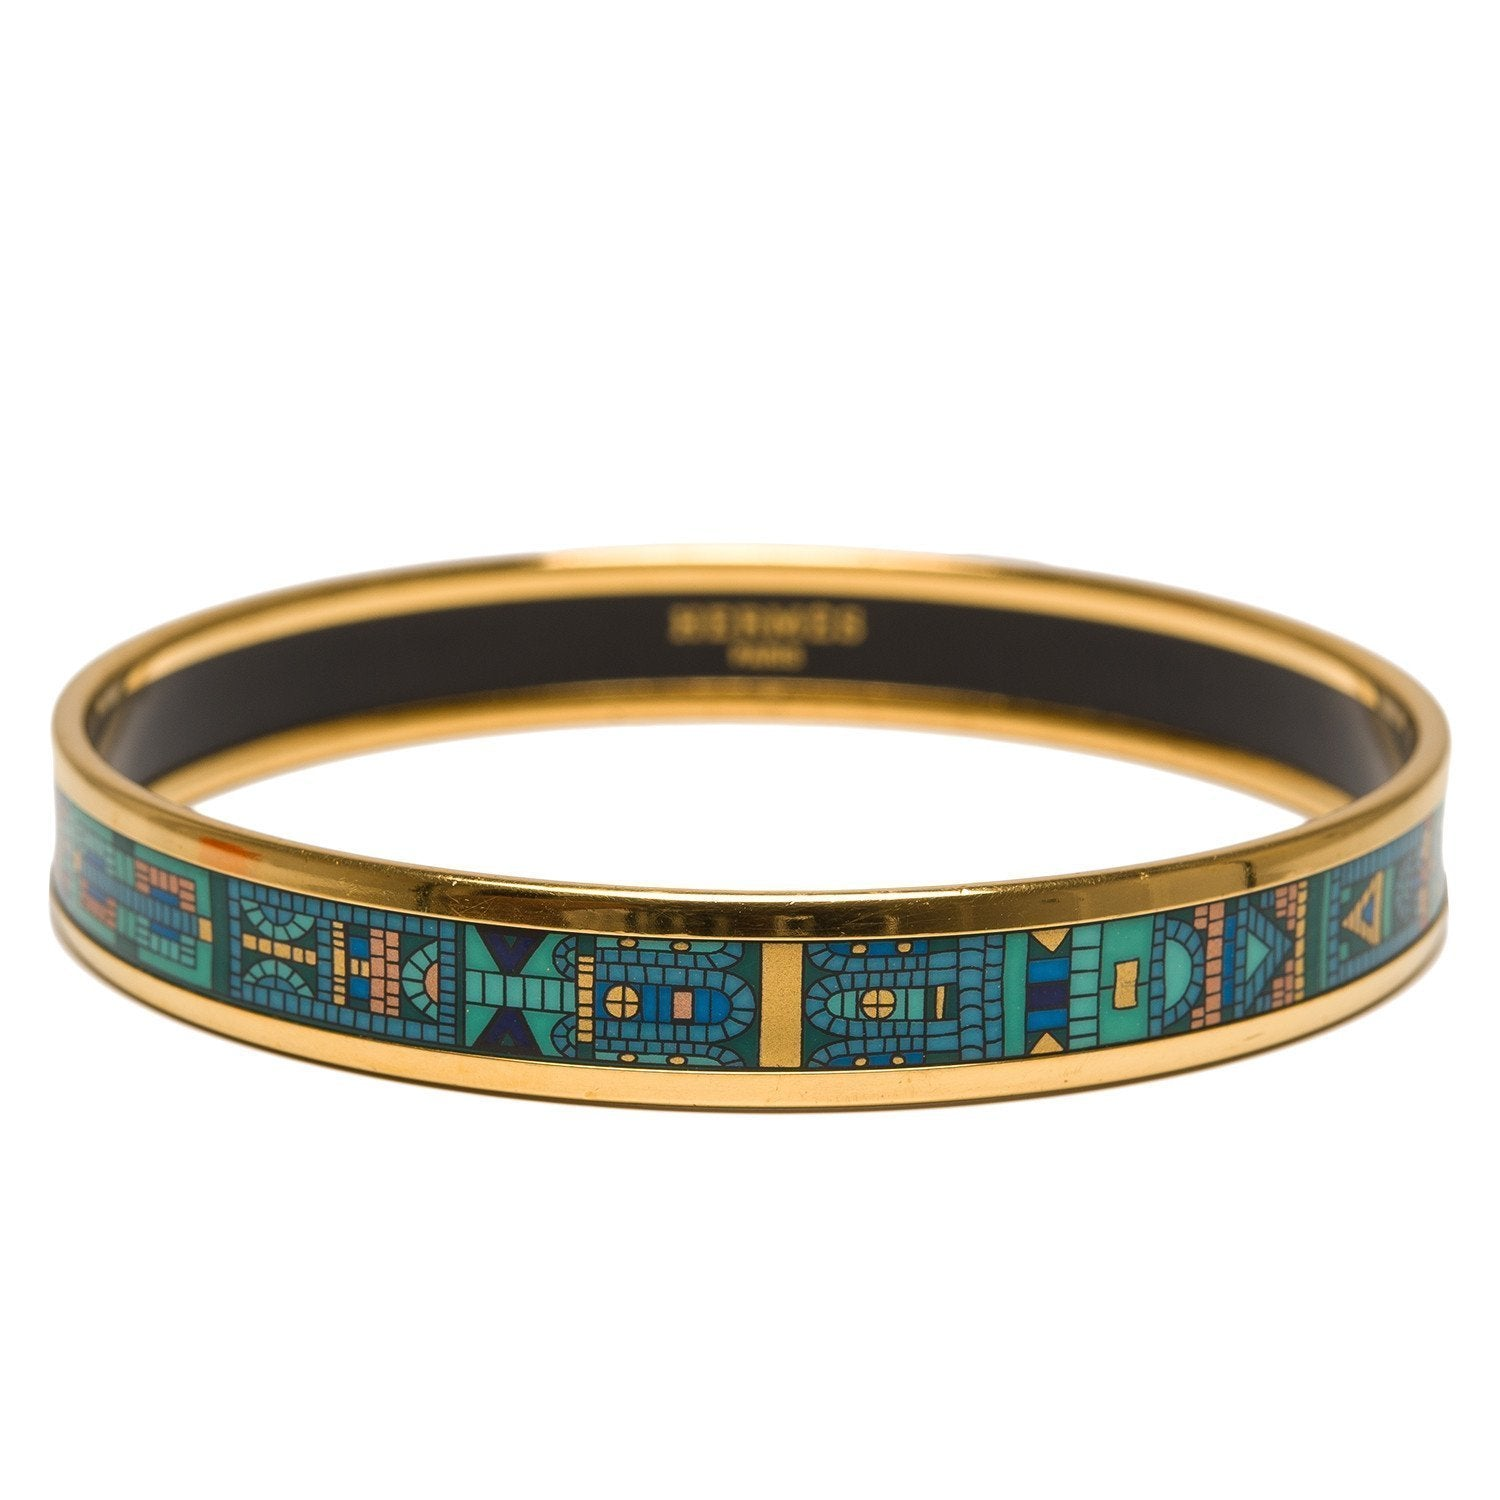 Hermes Mosaic Tiles Narrow Printed Enamel Bracelet Gm 70 Accessories